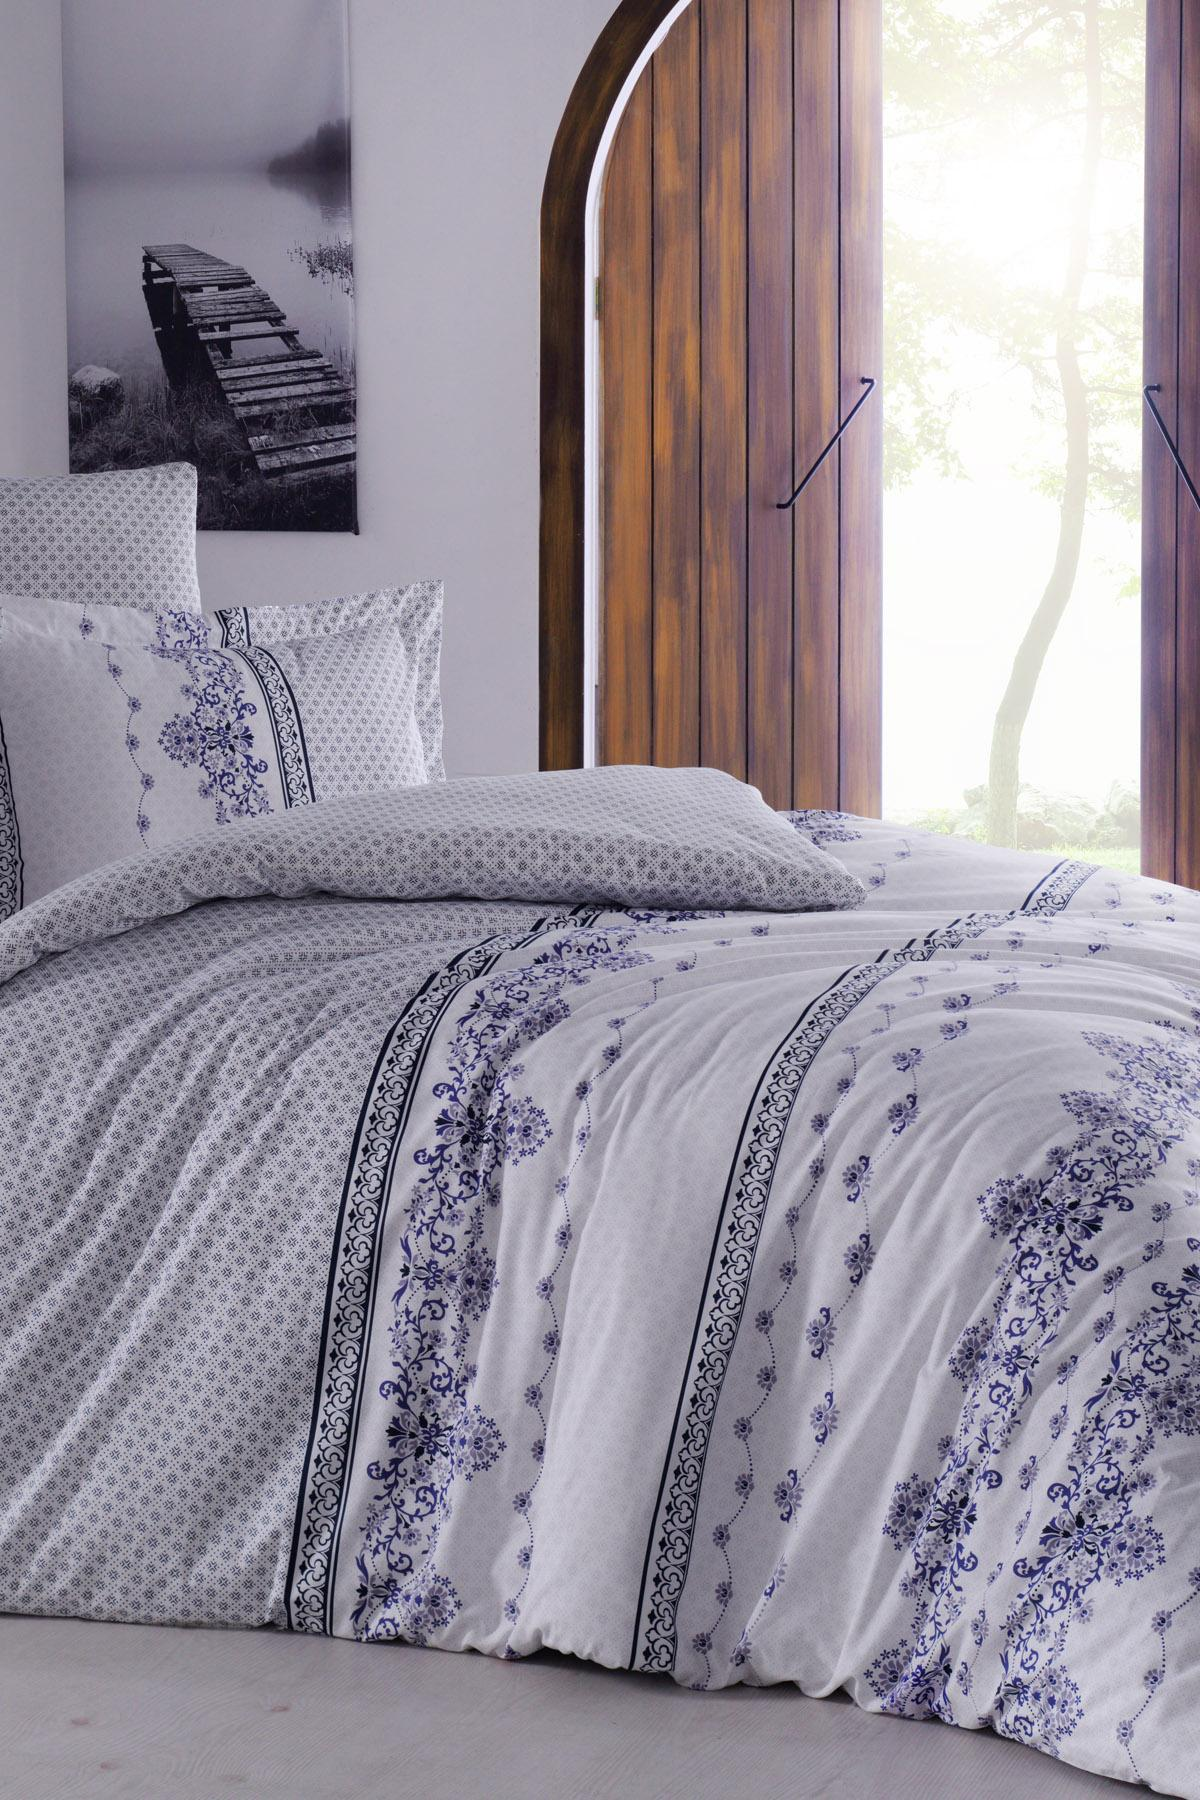 Bedding Set Fitted Sheet With 100% Cotton | Luxury Ranforce Bed Linen Set 3 Pcs Duvet Cover Set From Turkey Mania